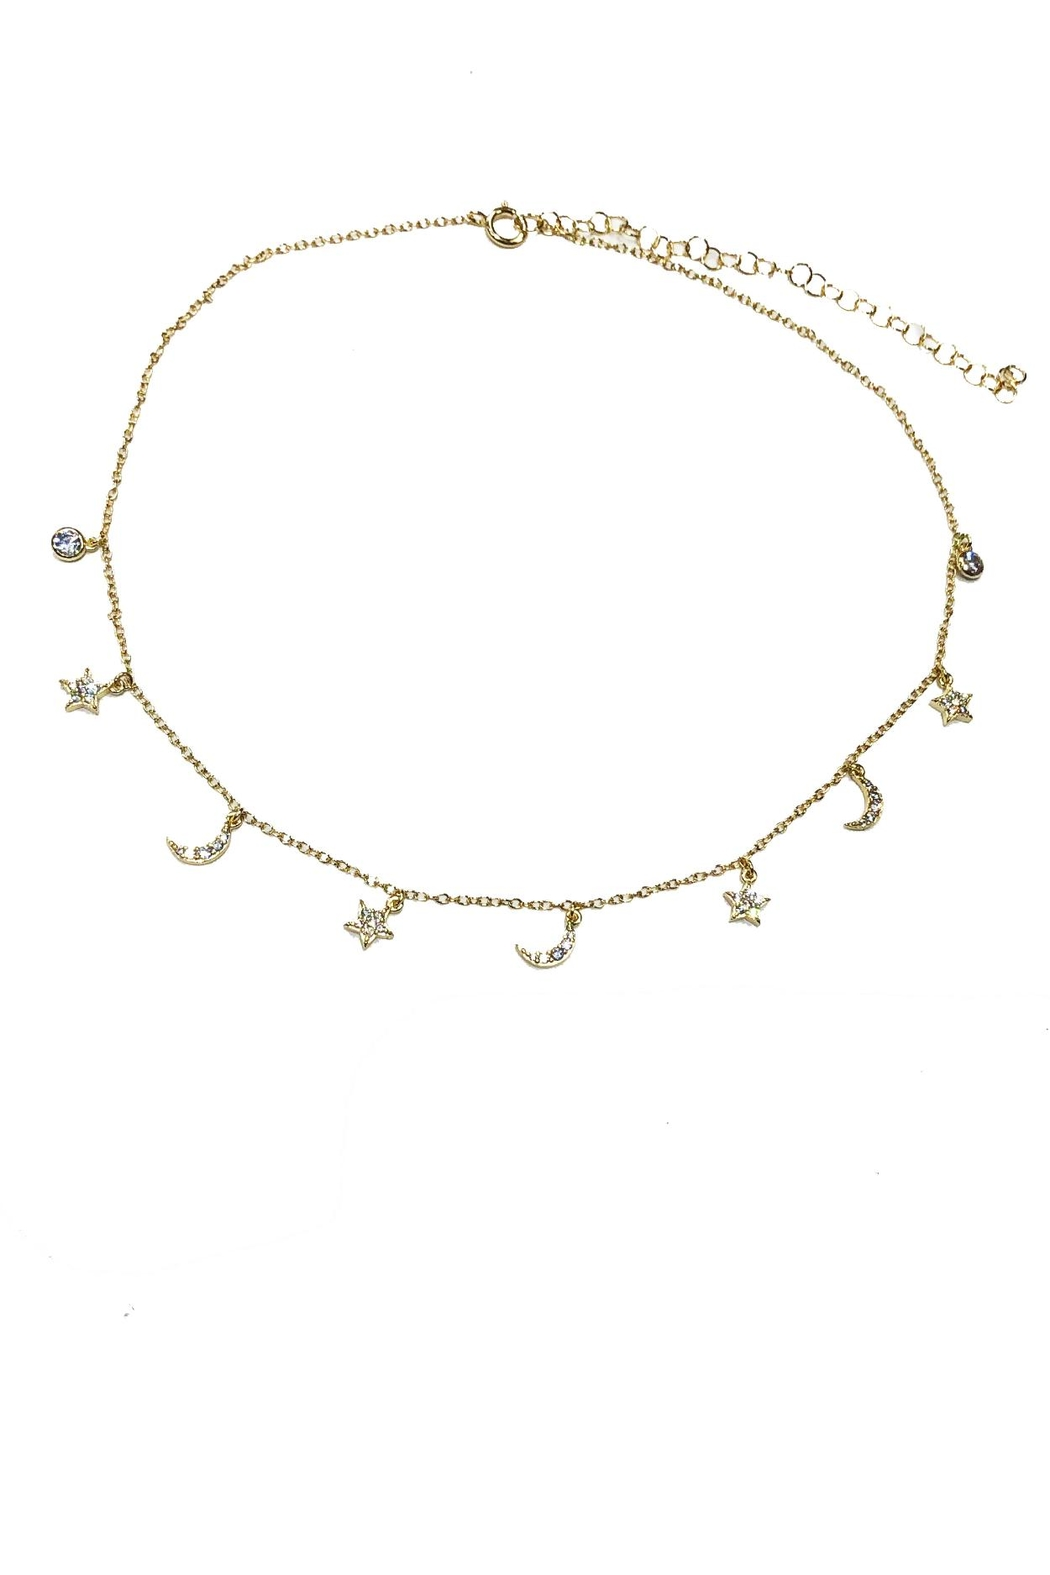 Carte Blanche Anklets Lets Accessorize Celestial Charm Choker From New York By Let S